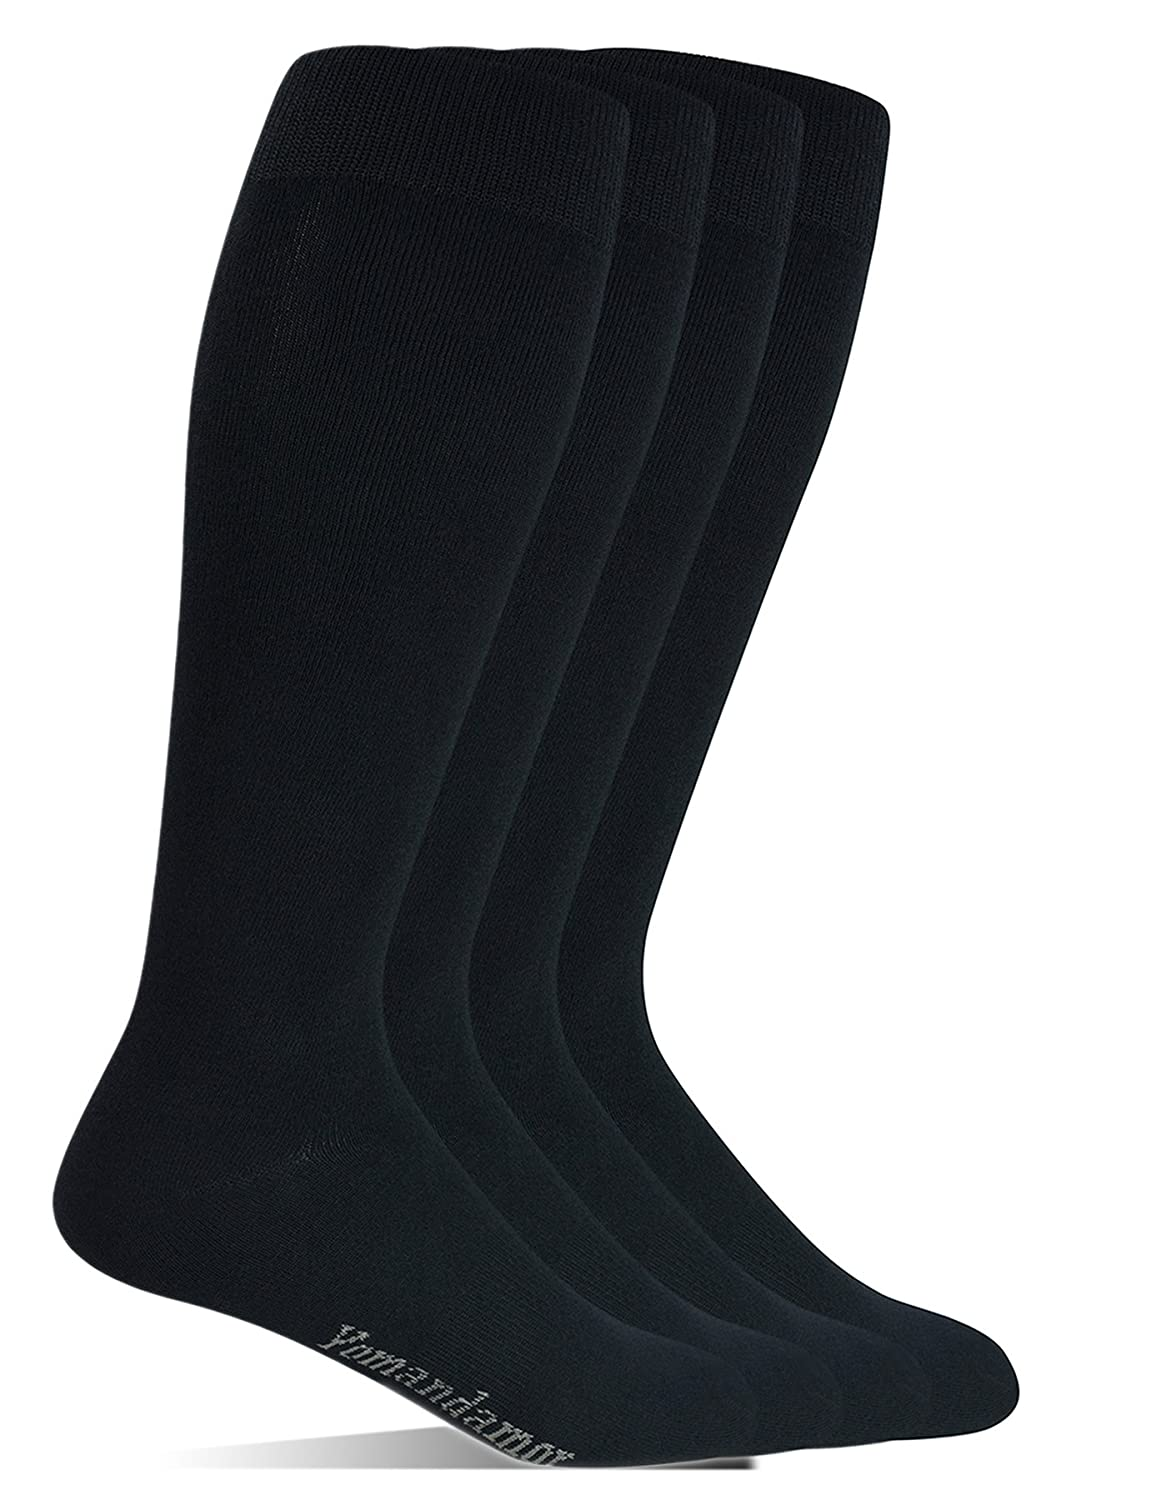 Yomandamor Men's Bamboo Extra Wide Top Over The Calf Dress Socks Boot Socks, 4 Pairs L Size, Suits For All Season BD-S-0166-Black